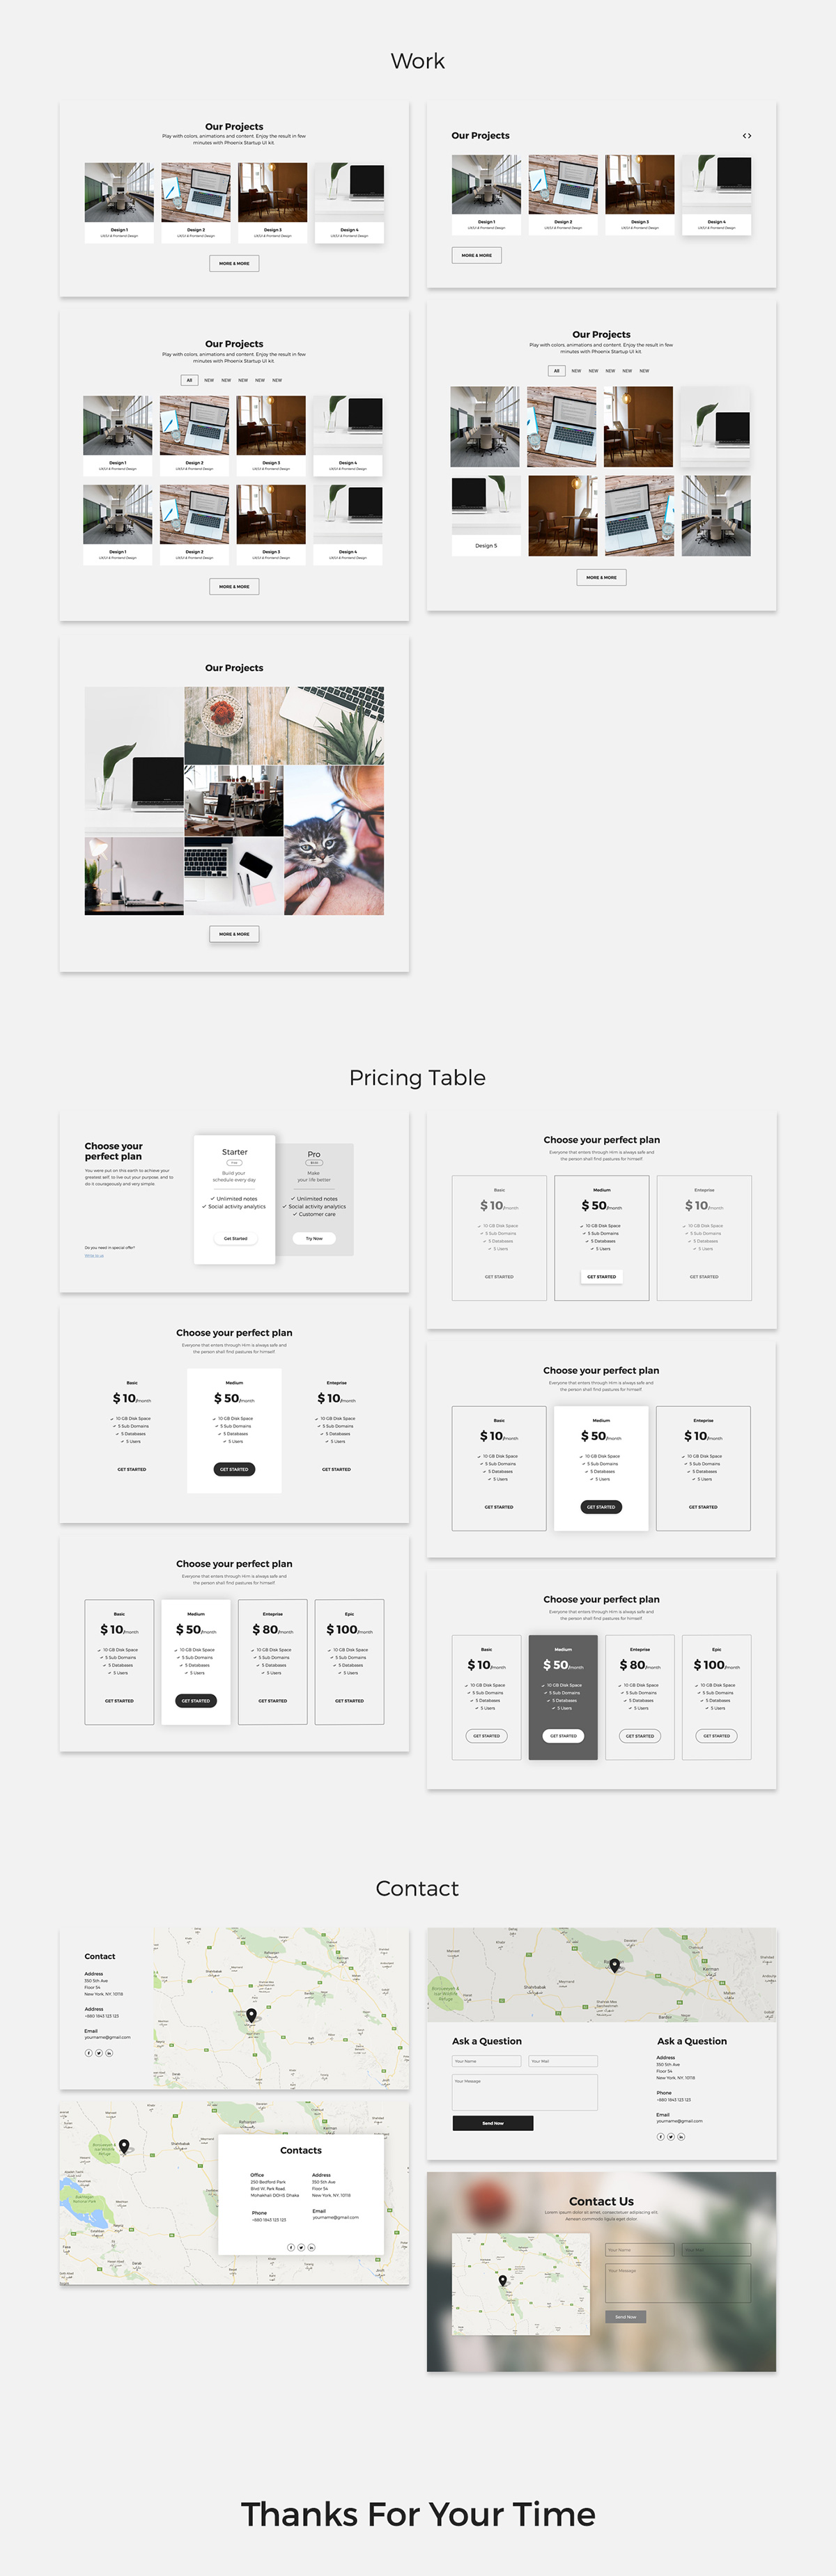 Free Landing Page UI Kit for PSD - Work, Map & Contacts